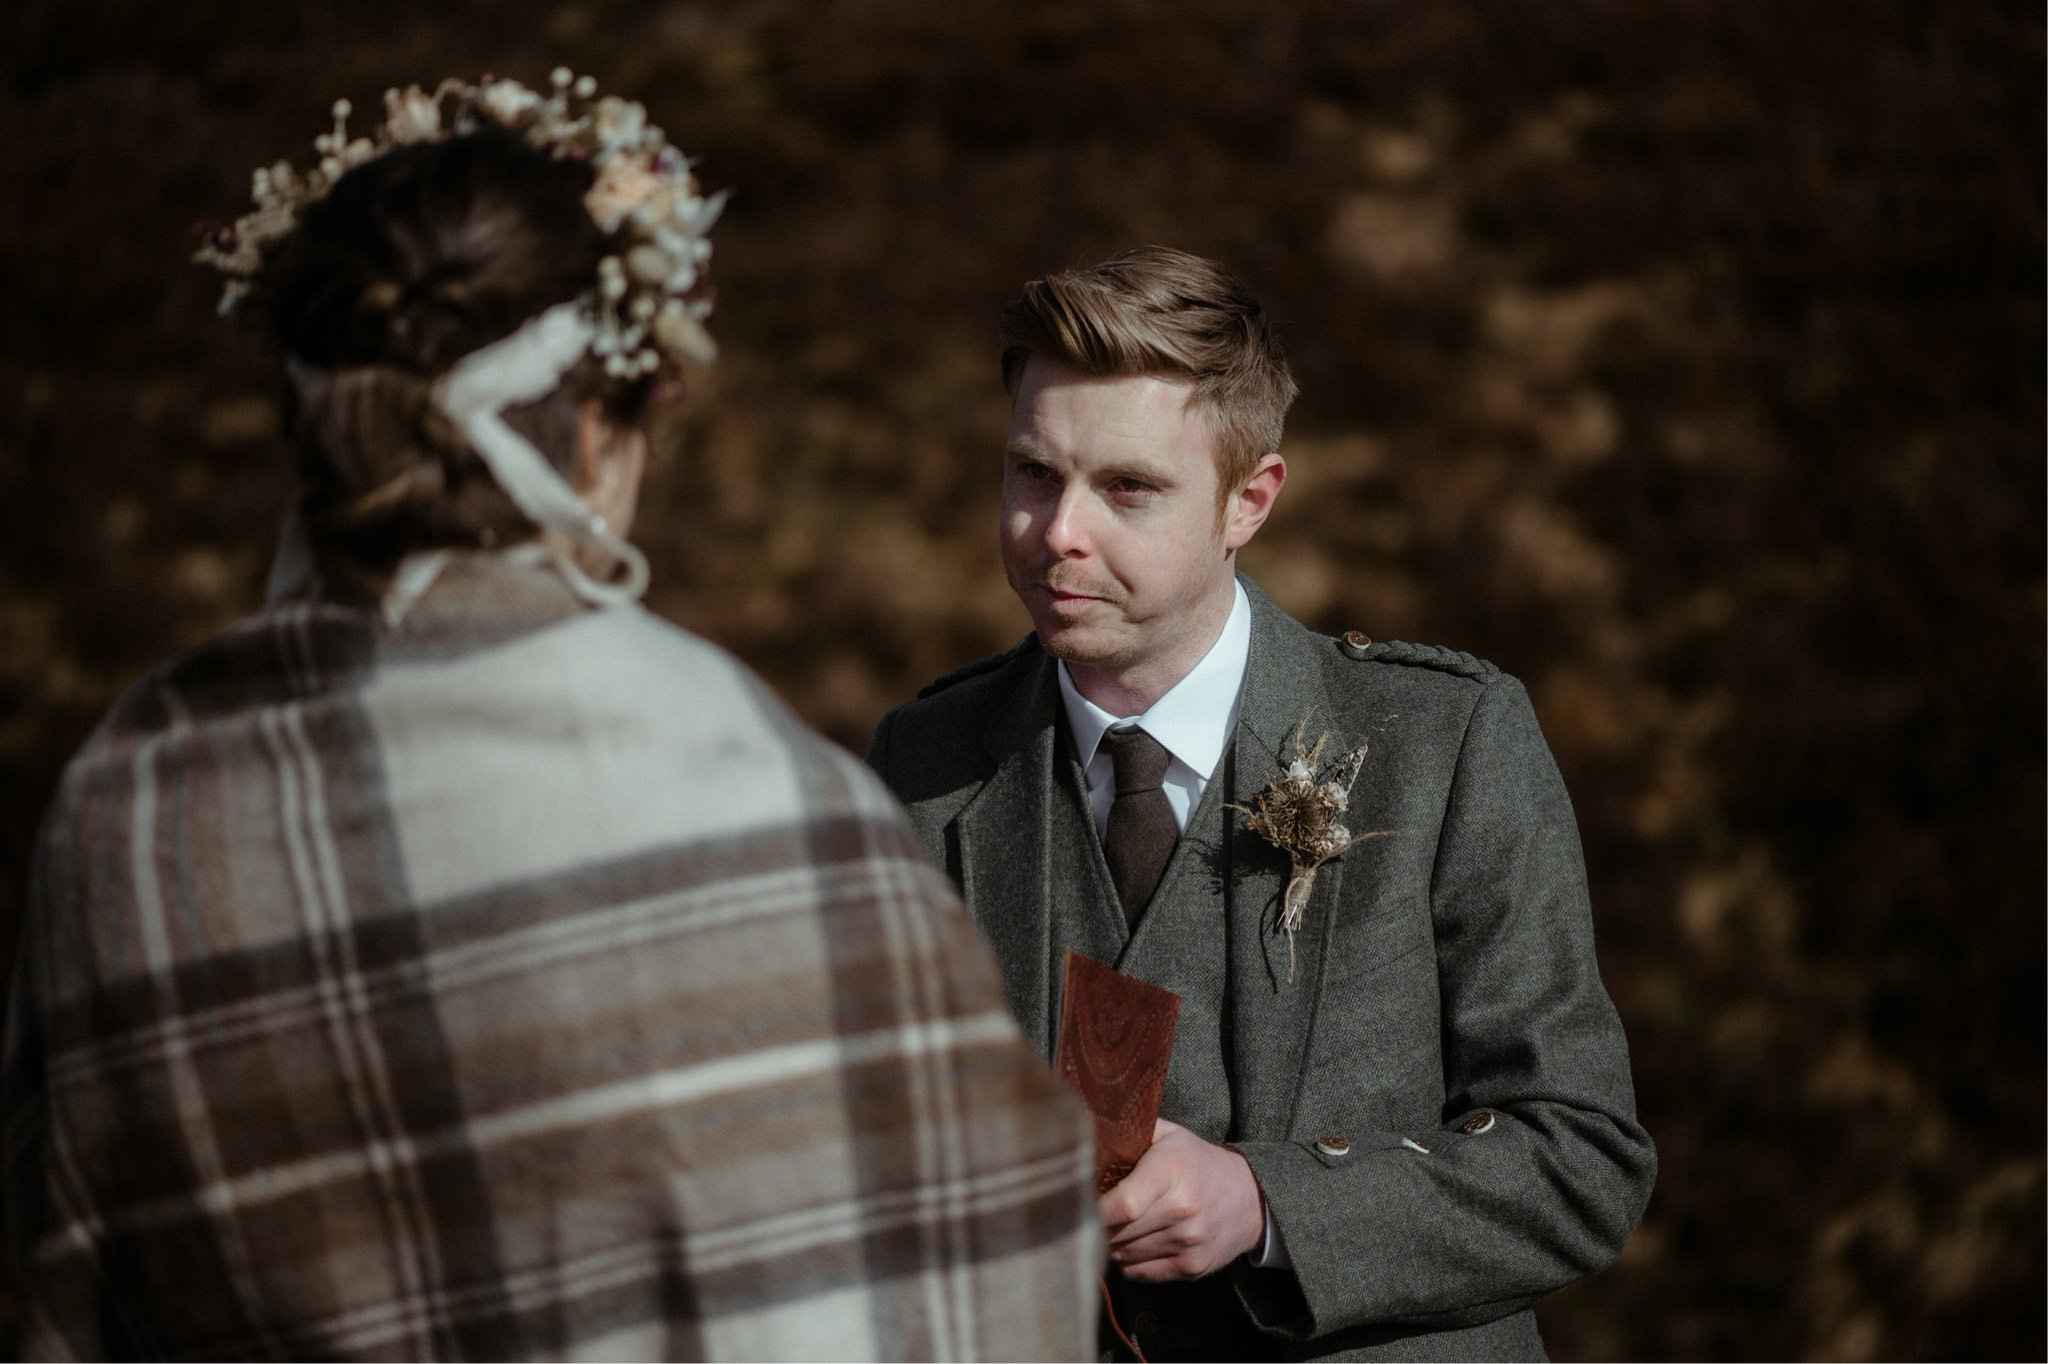 Groom reading vows to his bride during an elopement wedding in Assynt, Scotland